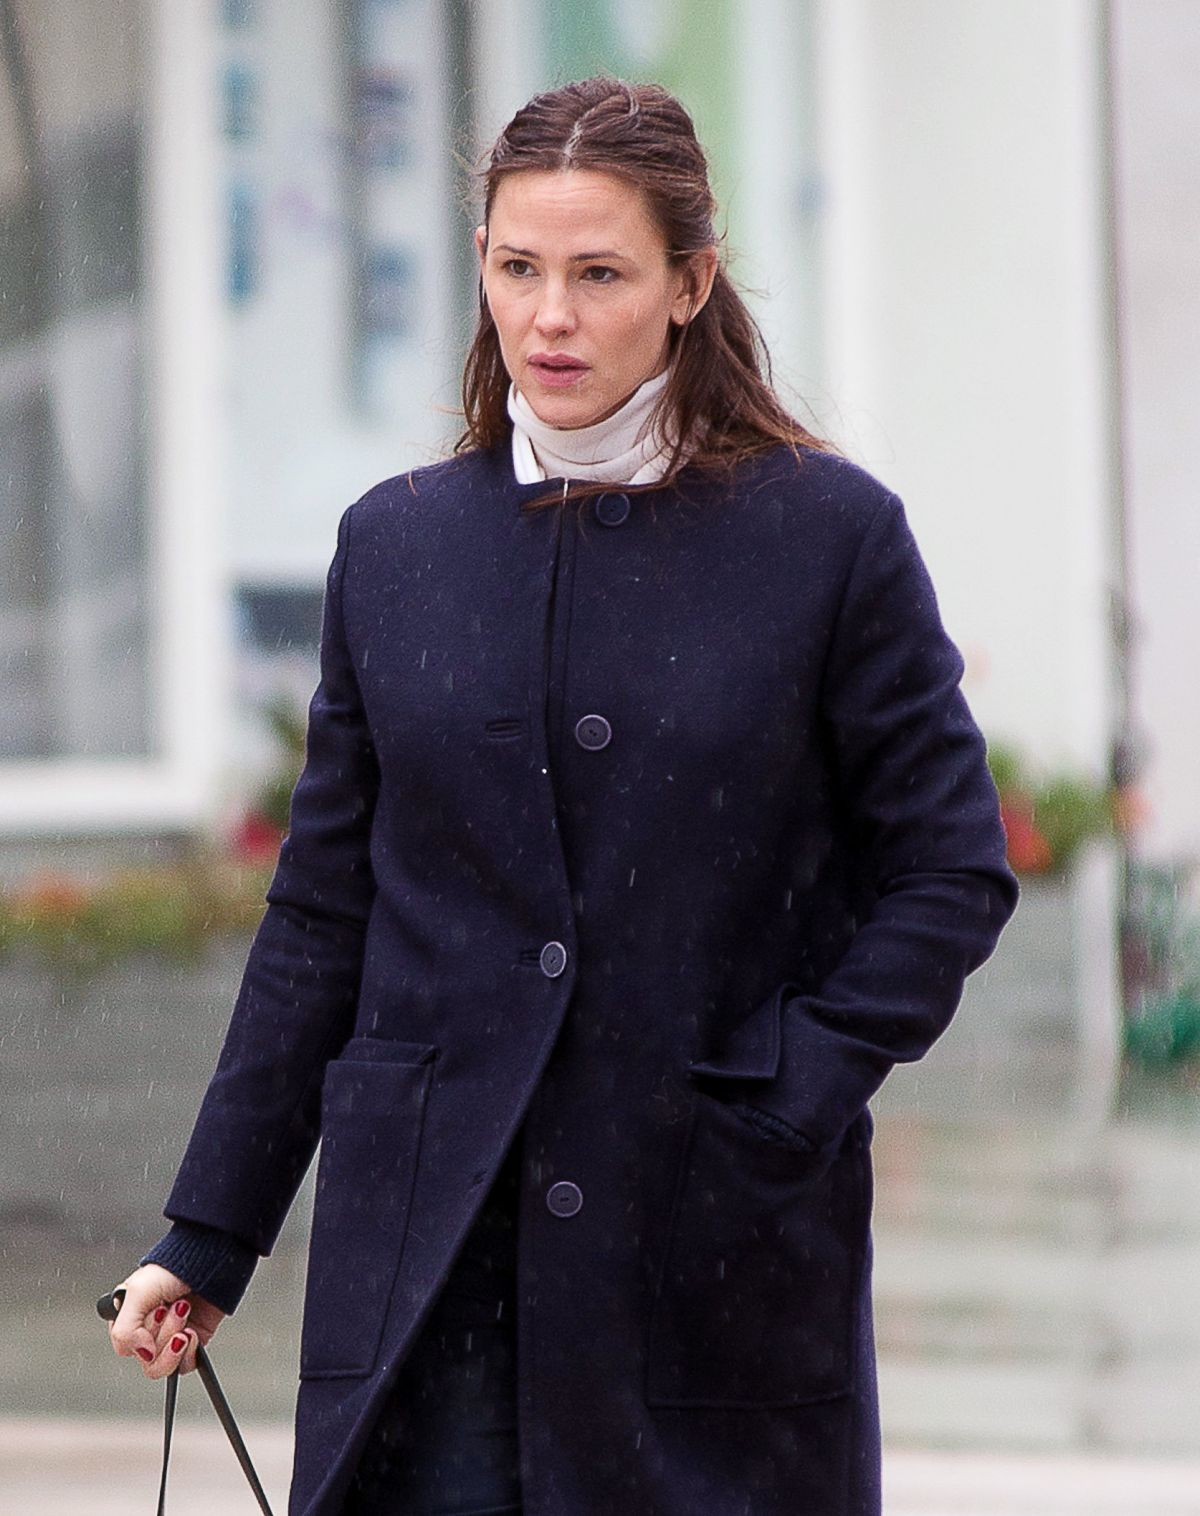 JENNIFER GARNER Heading to a Church Service in Los Angeles 01/22/2017